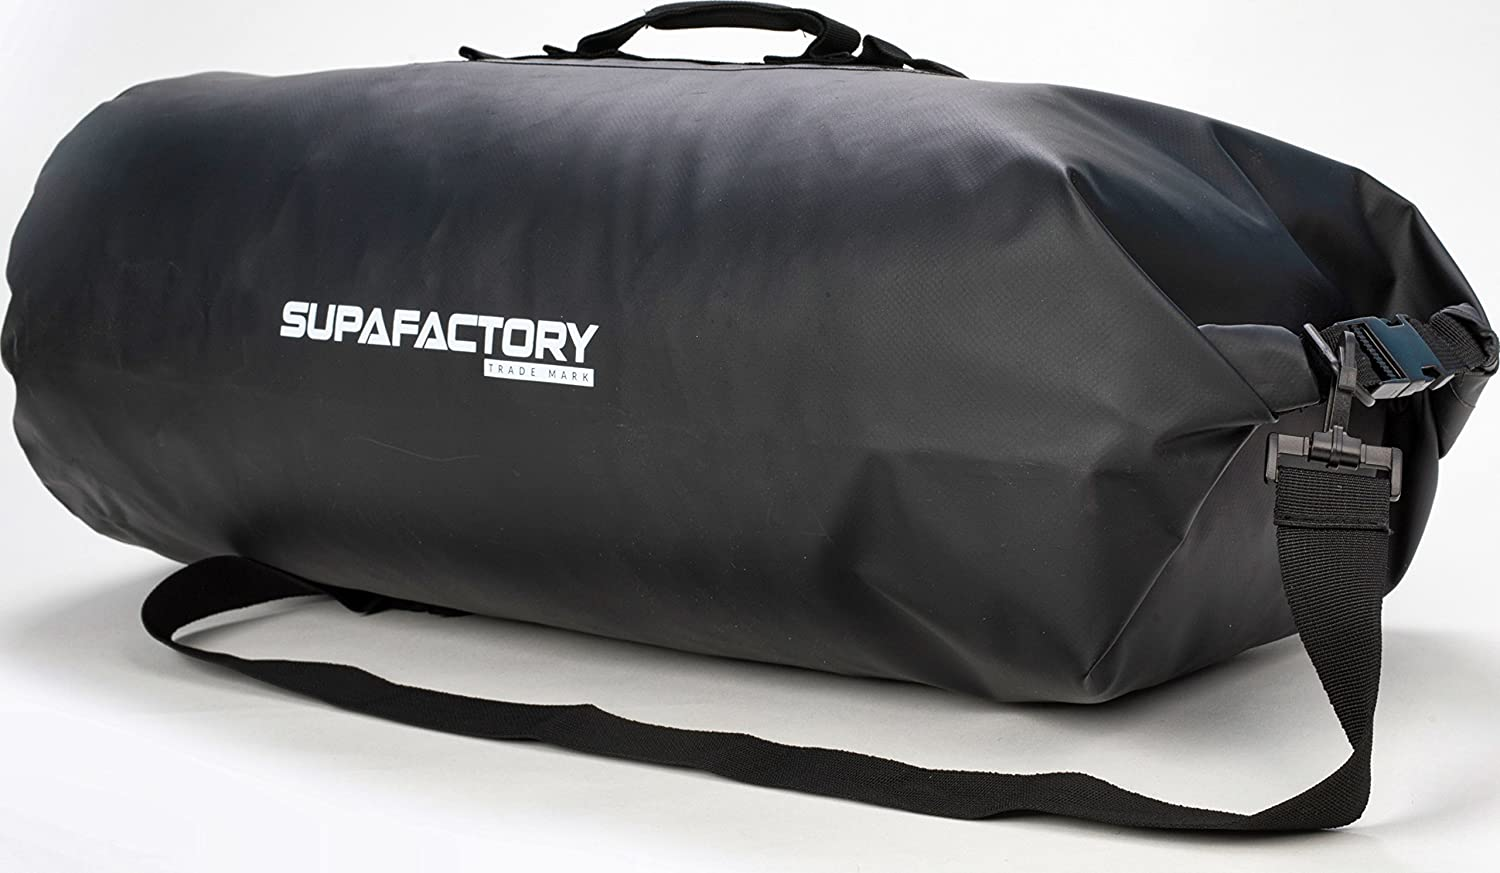 Supafactory 20L Waterproof Dry/Roll Bag For Motorcycles & Motorbikes Supafactory®